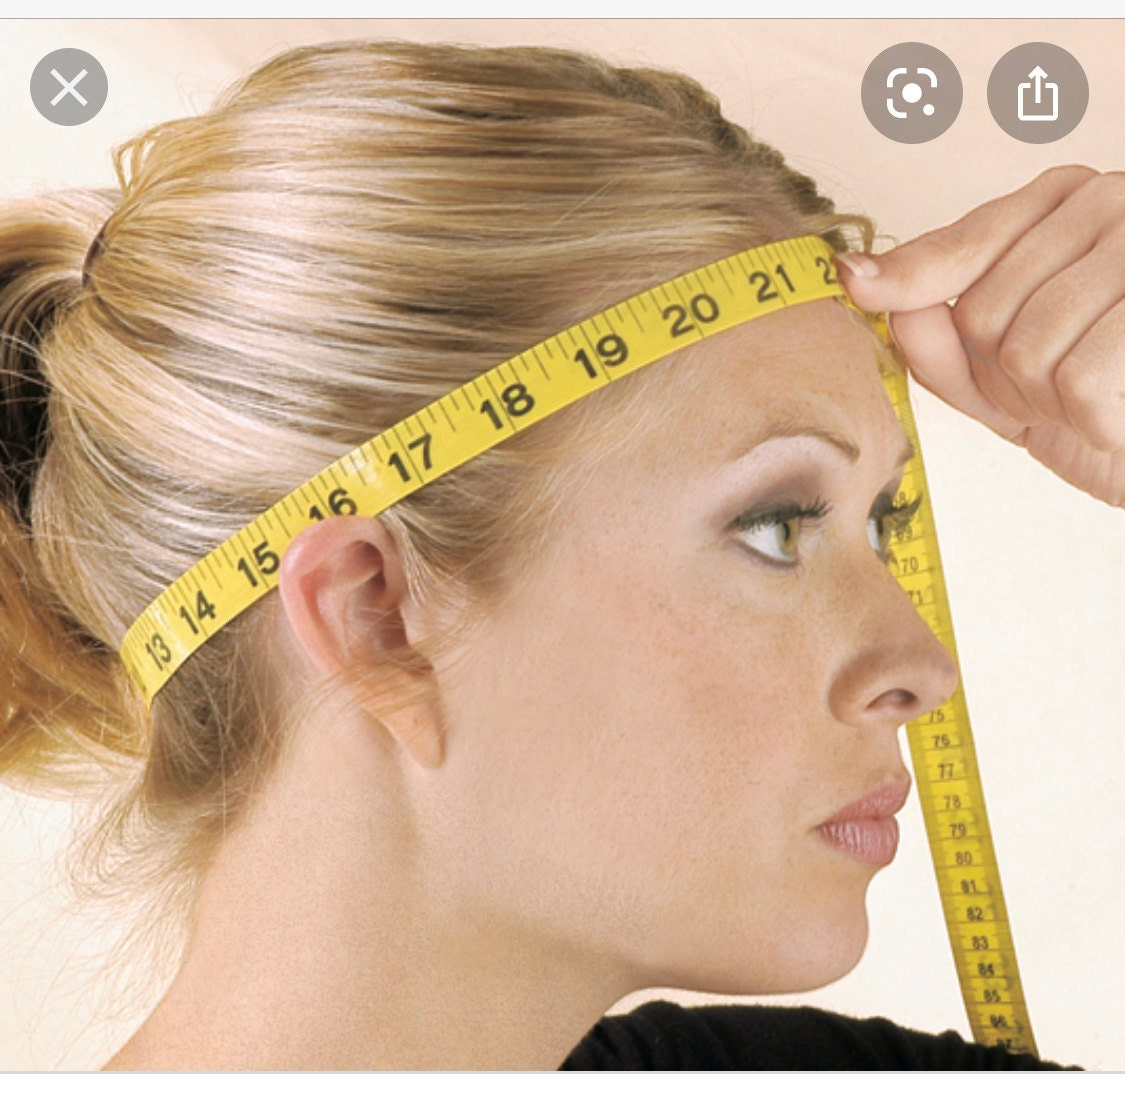 Measure your head with a measurement tape